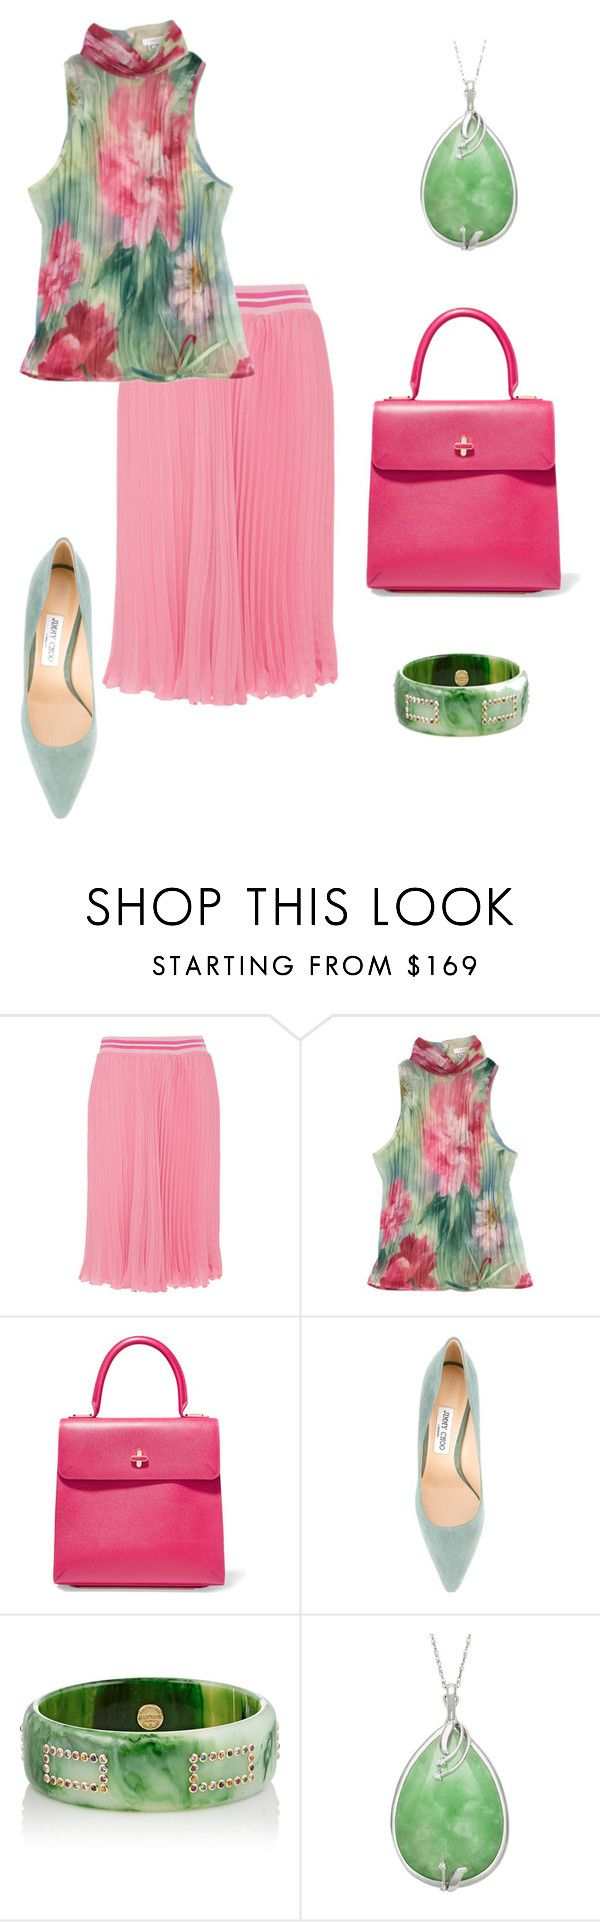 """Untitled #562"" by sensual-spirit on Polyvore featuring Blugirl, ESCADA, Charlotte Olympia, Jimmy Choo and Mark Davis"